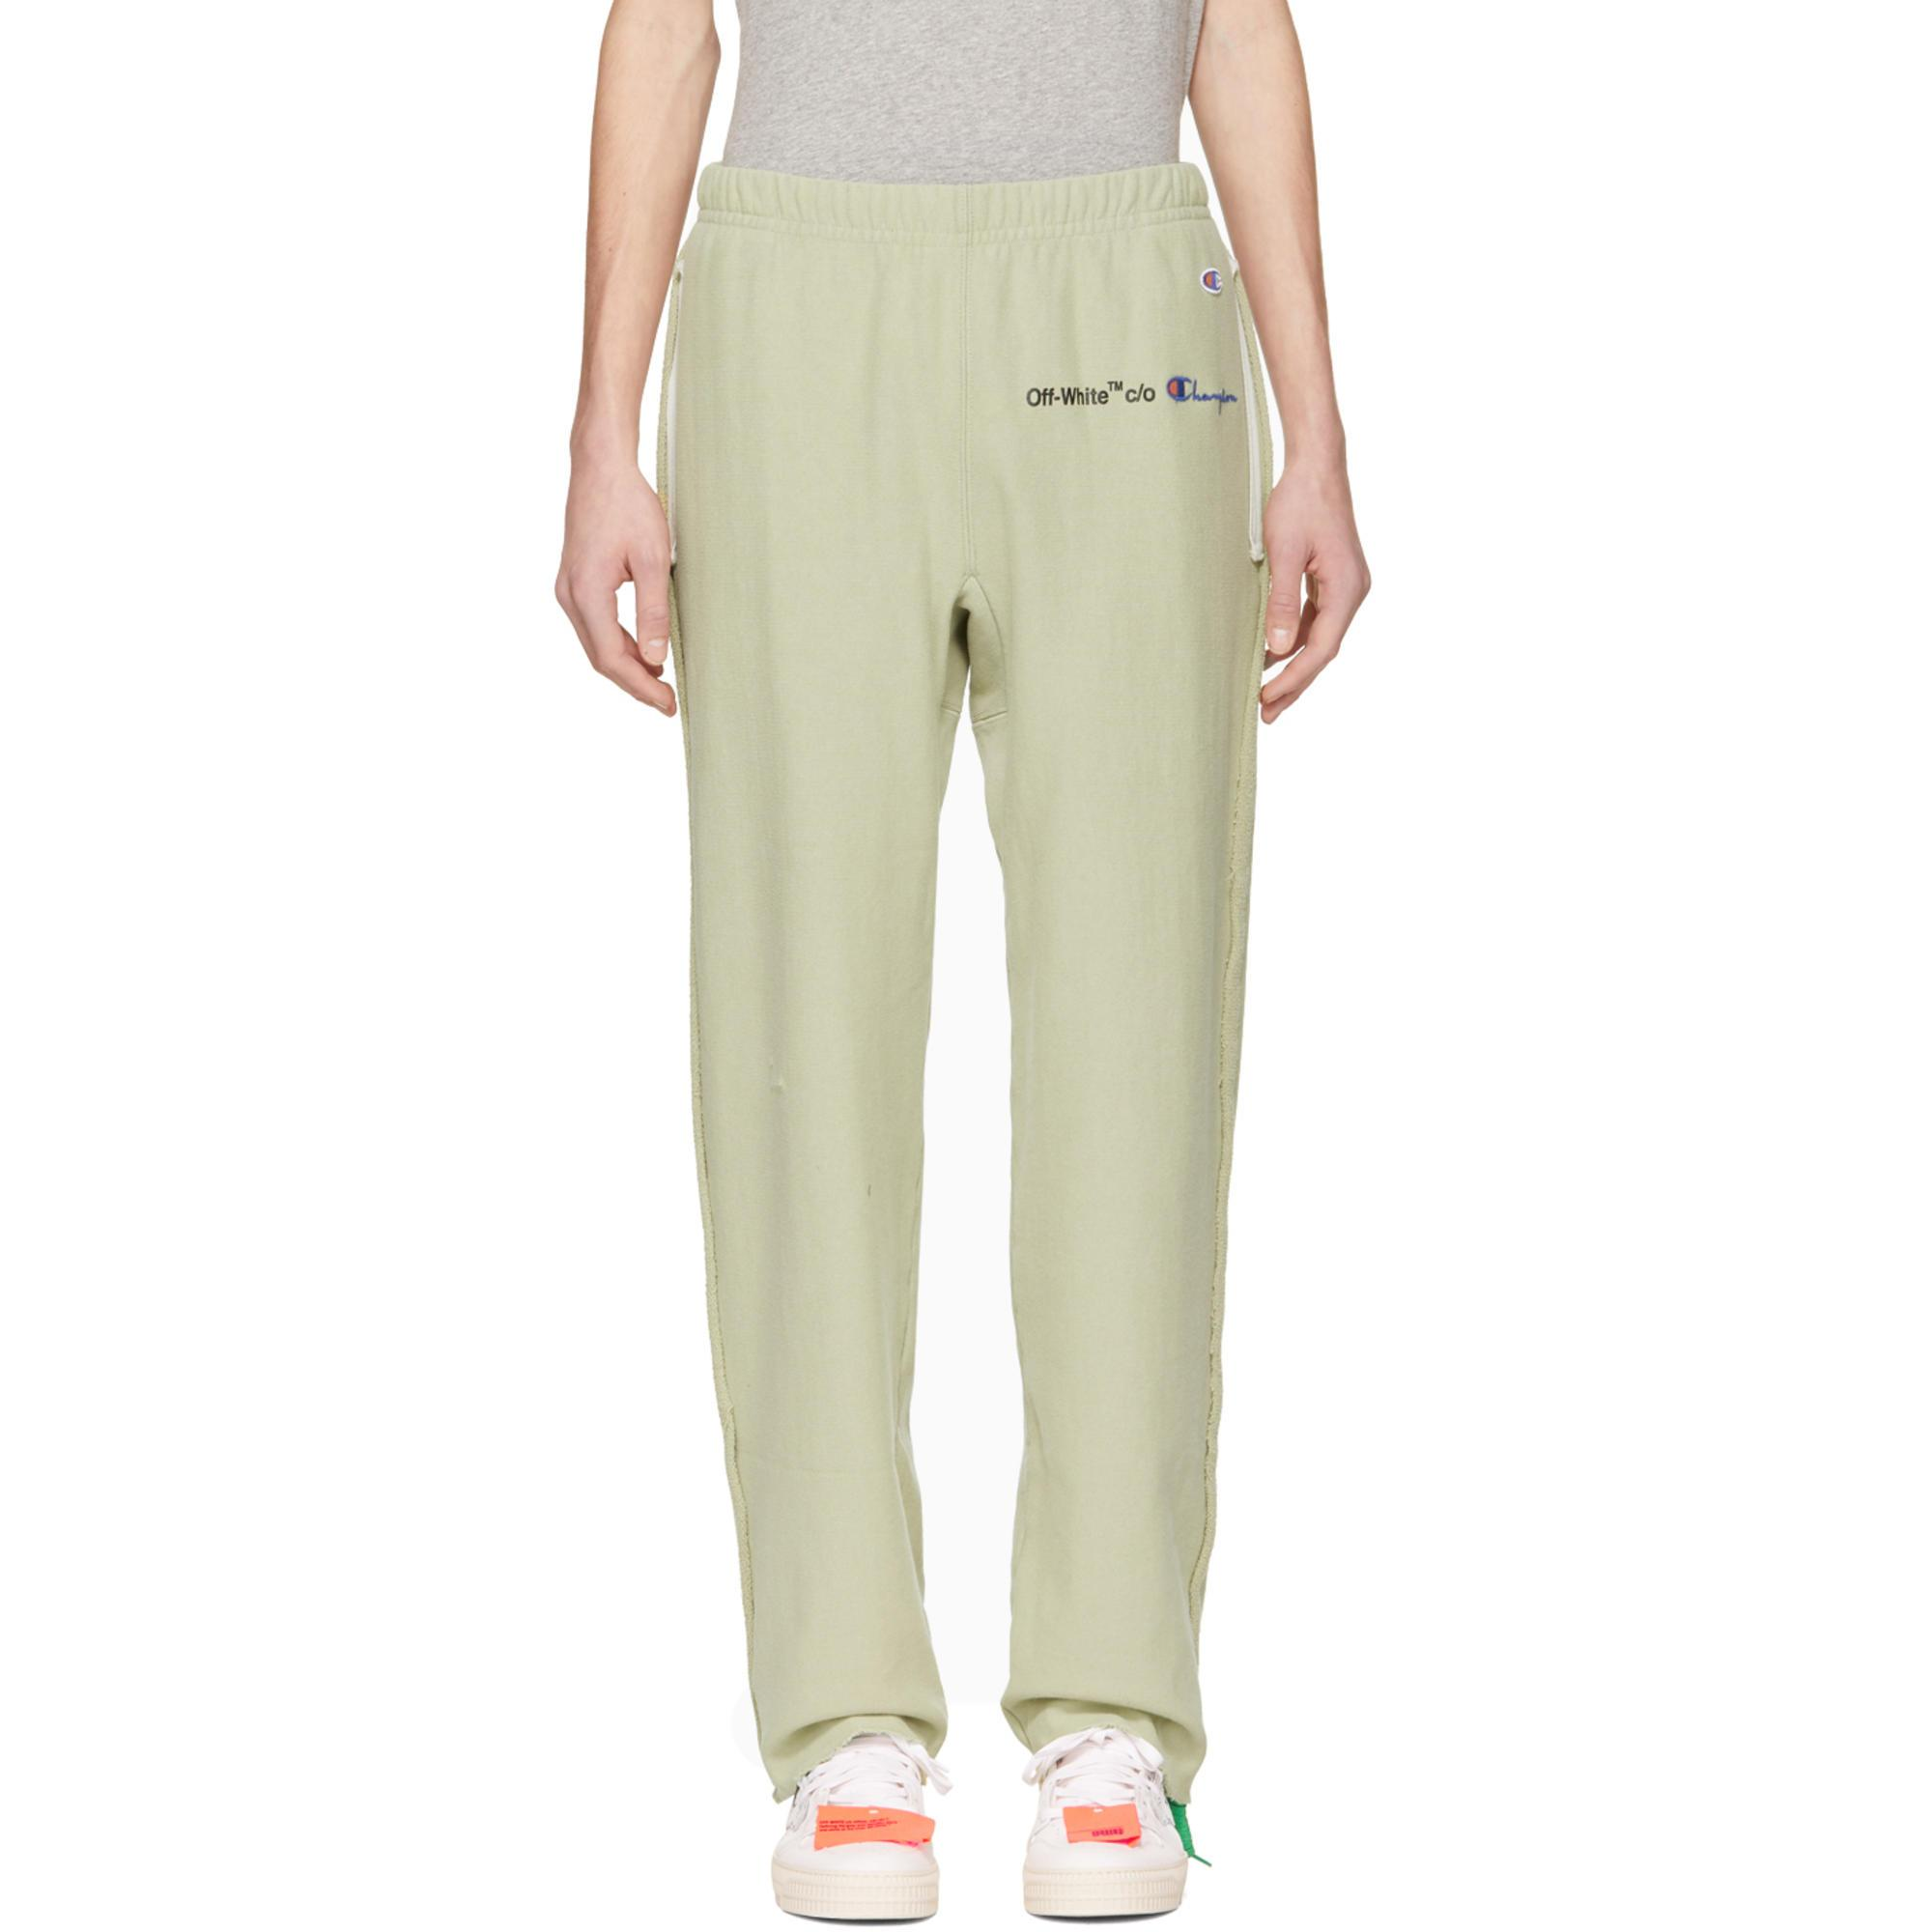 0d9dee00ac5a9c Off-White c/o Virgil Abloh Green Champion Edition Sweatpants in ...